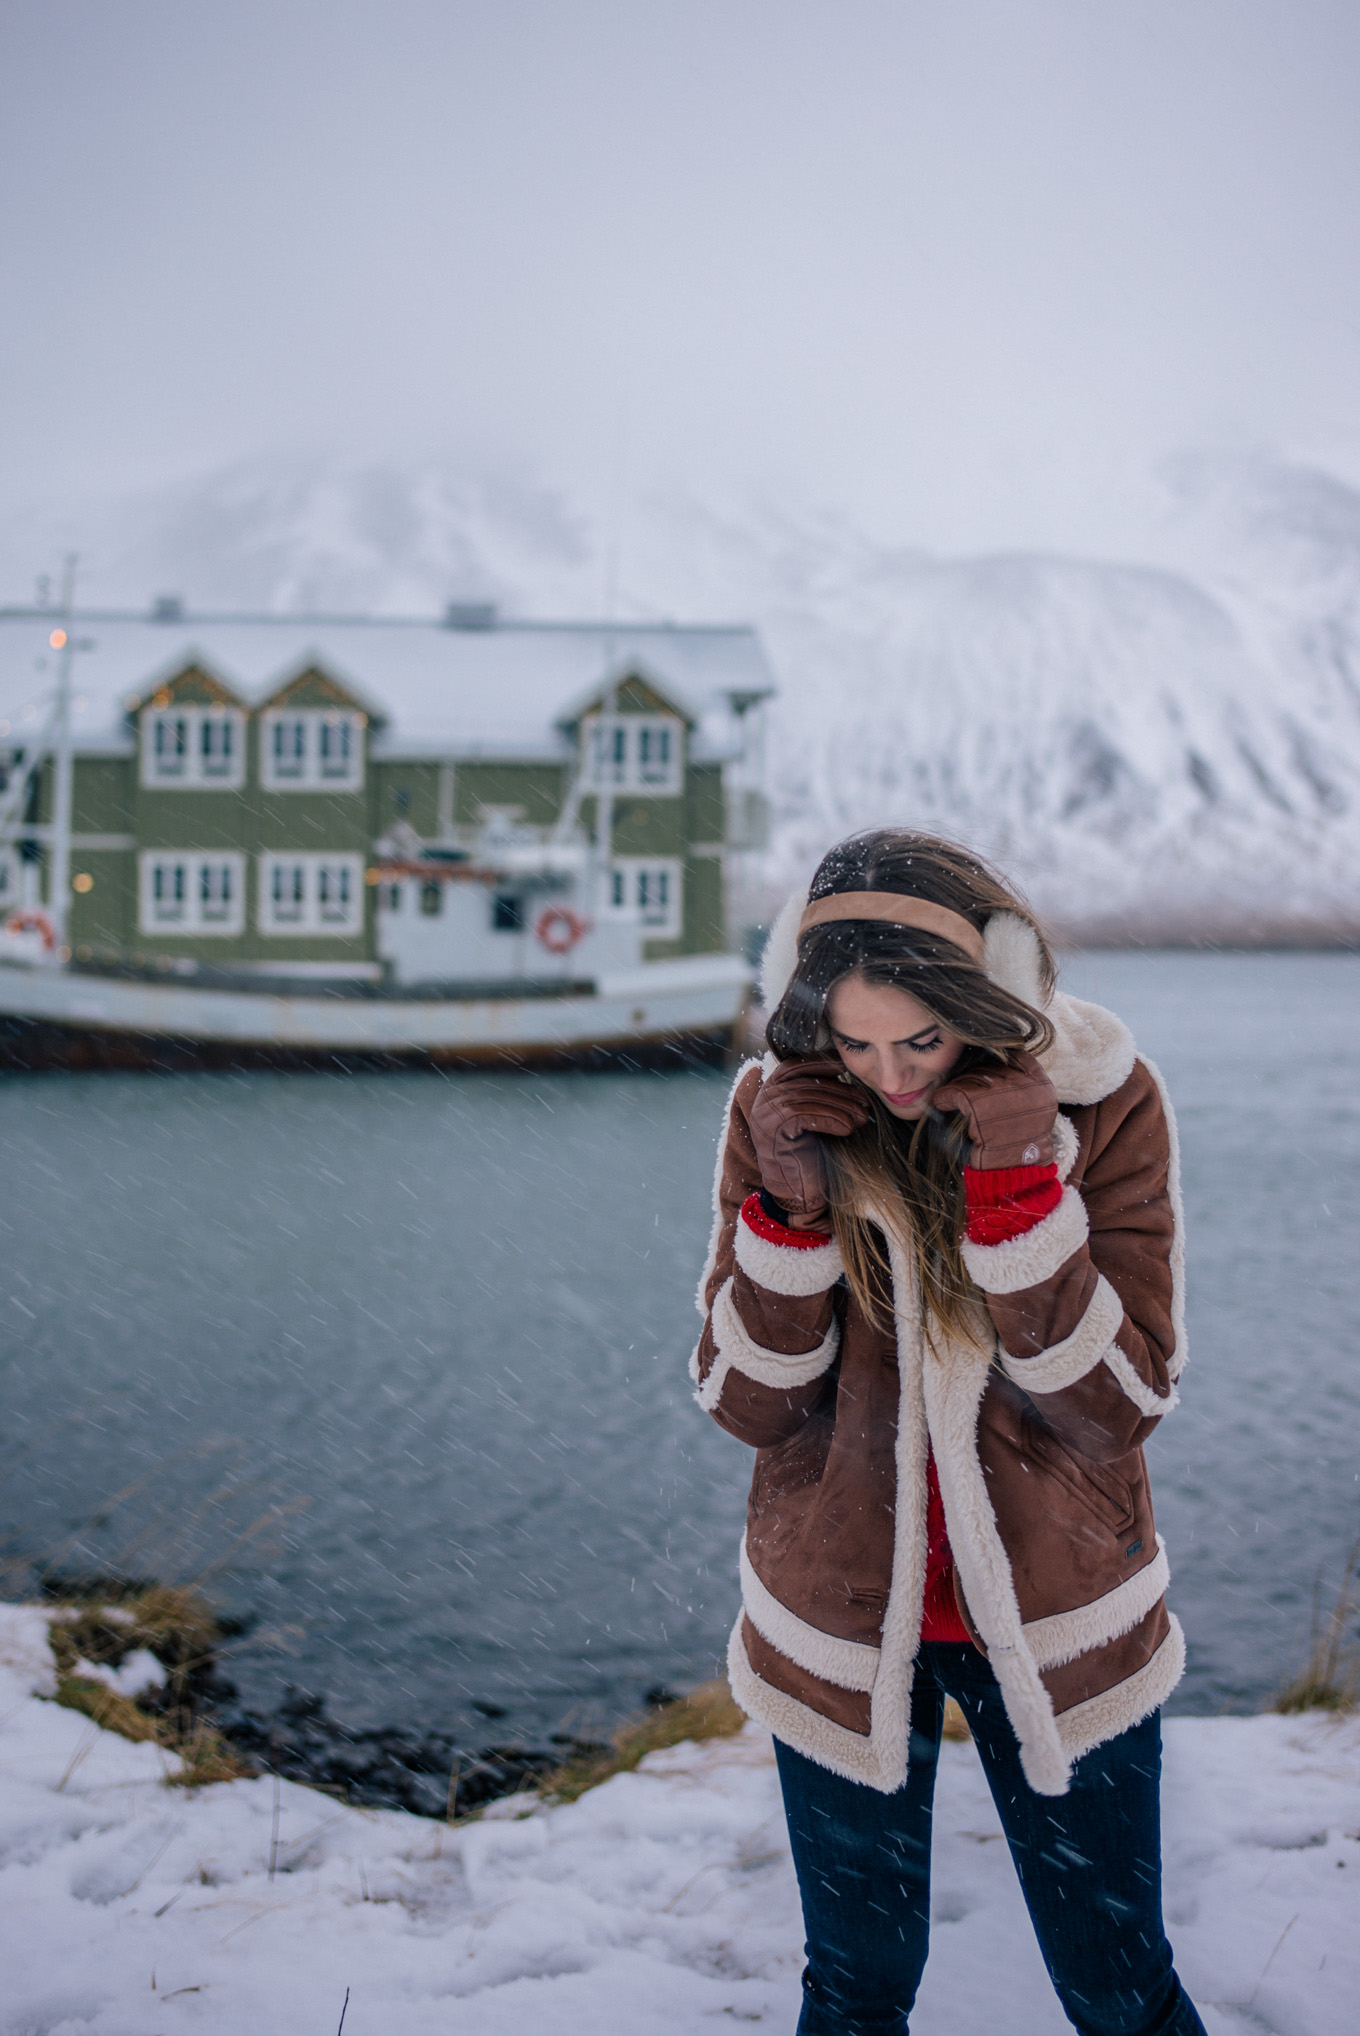 gmg-iceland-itinerary-winter-1007359